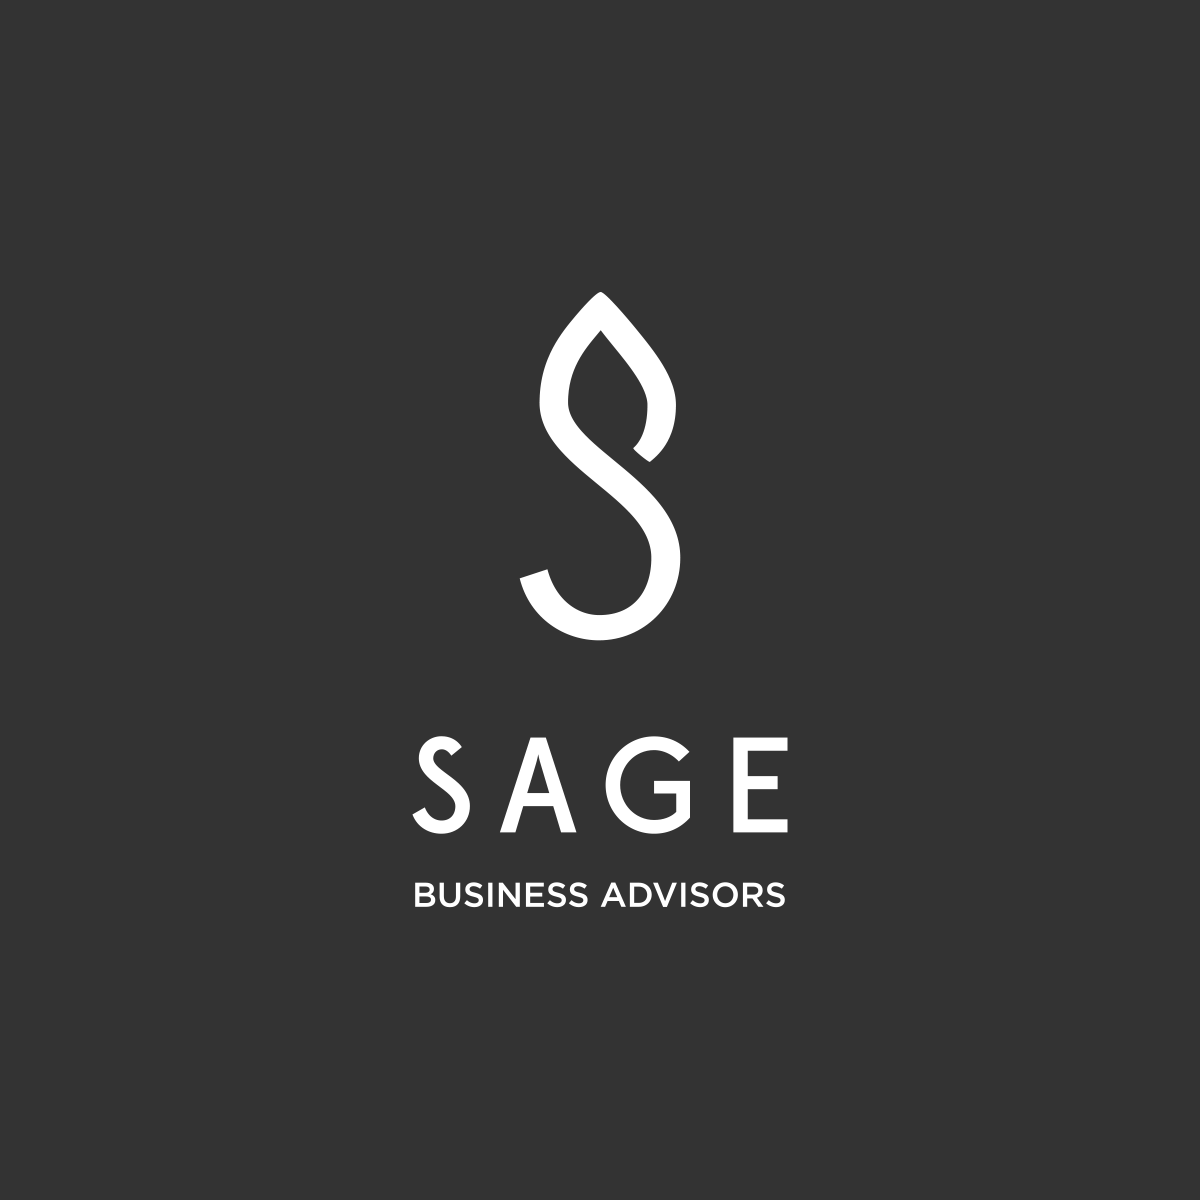 Sage Logo Design Gray